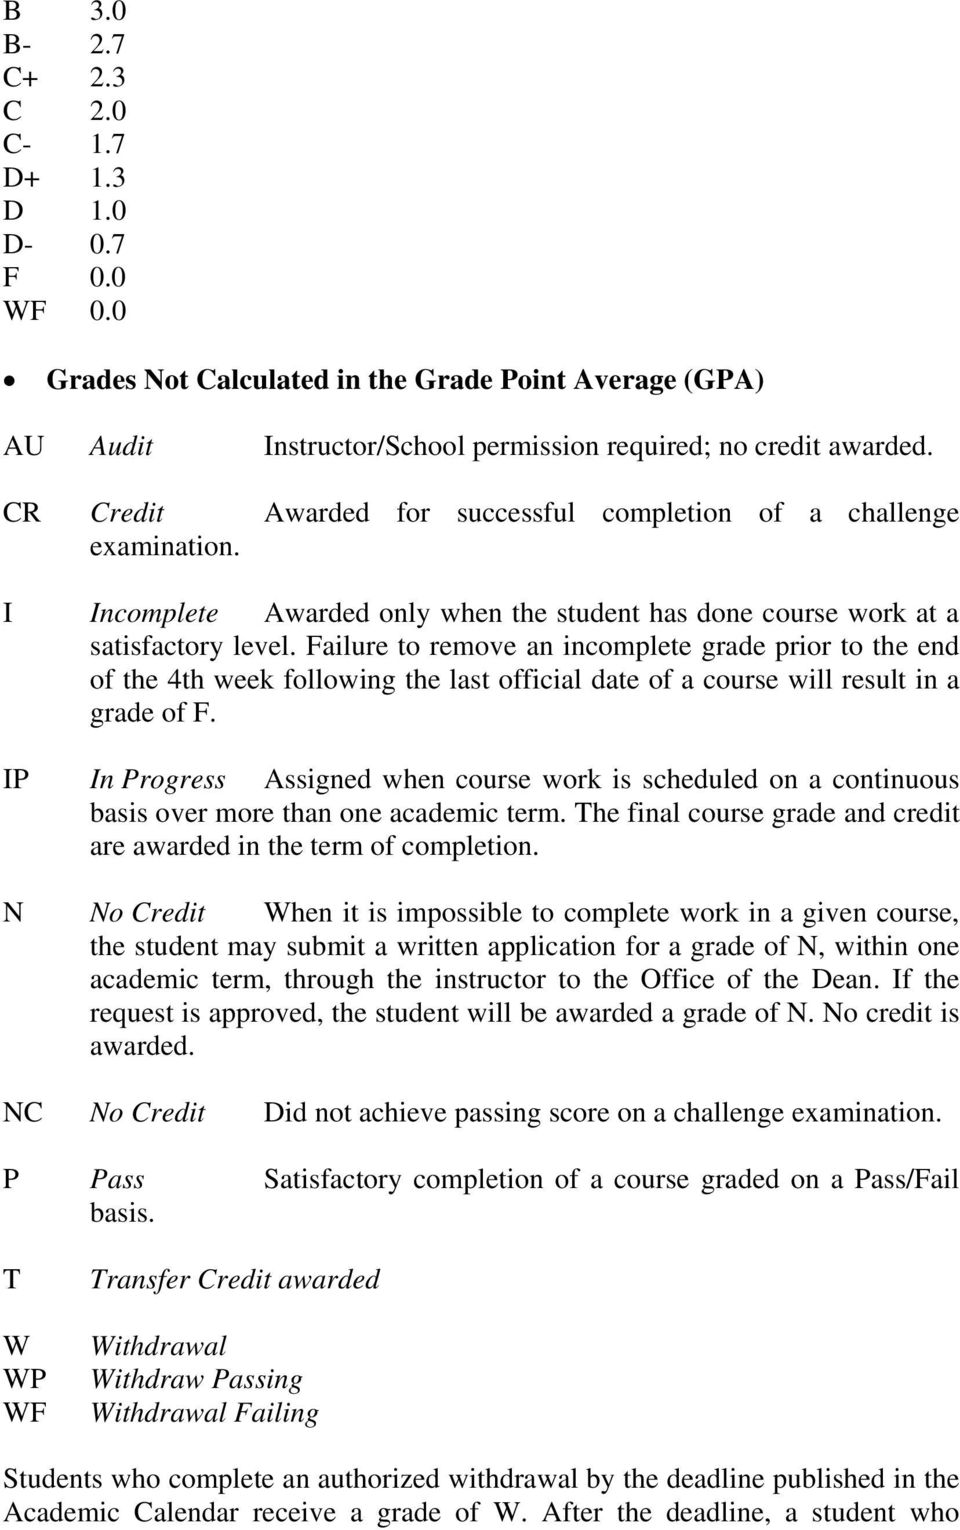 Failure to remove an incomplete grade prior to the end of the 4th week following the last official date of a course will result in a grade of F.